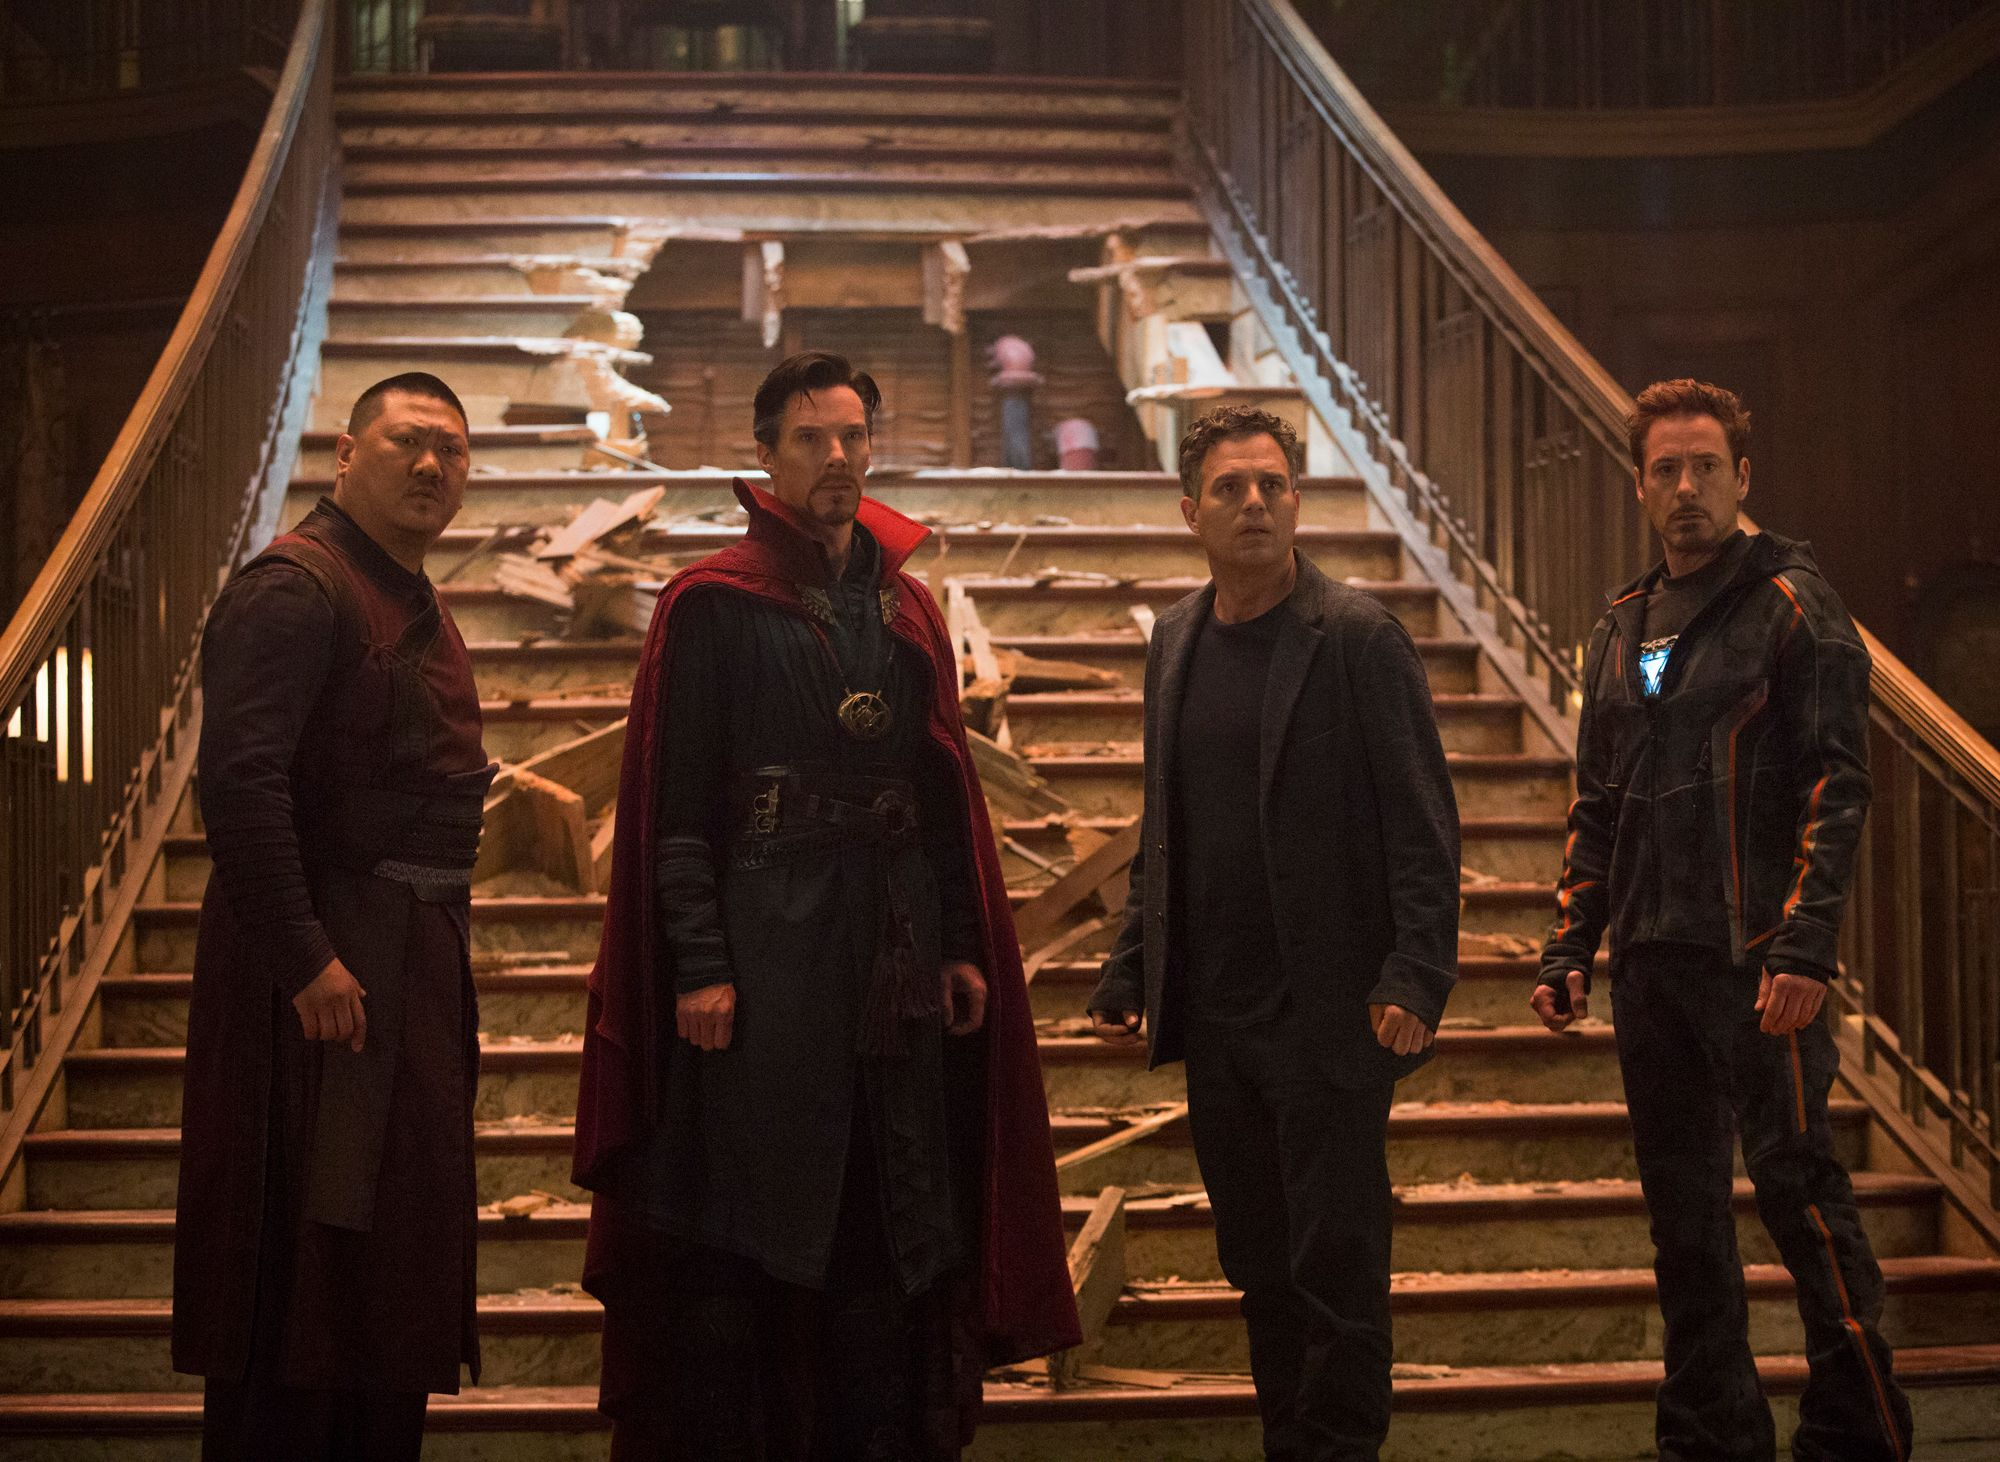 Avengers: Infinity War Characters Sorted into Hogwarts